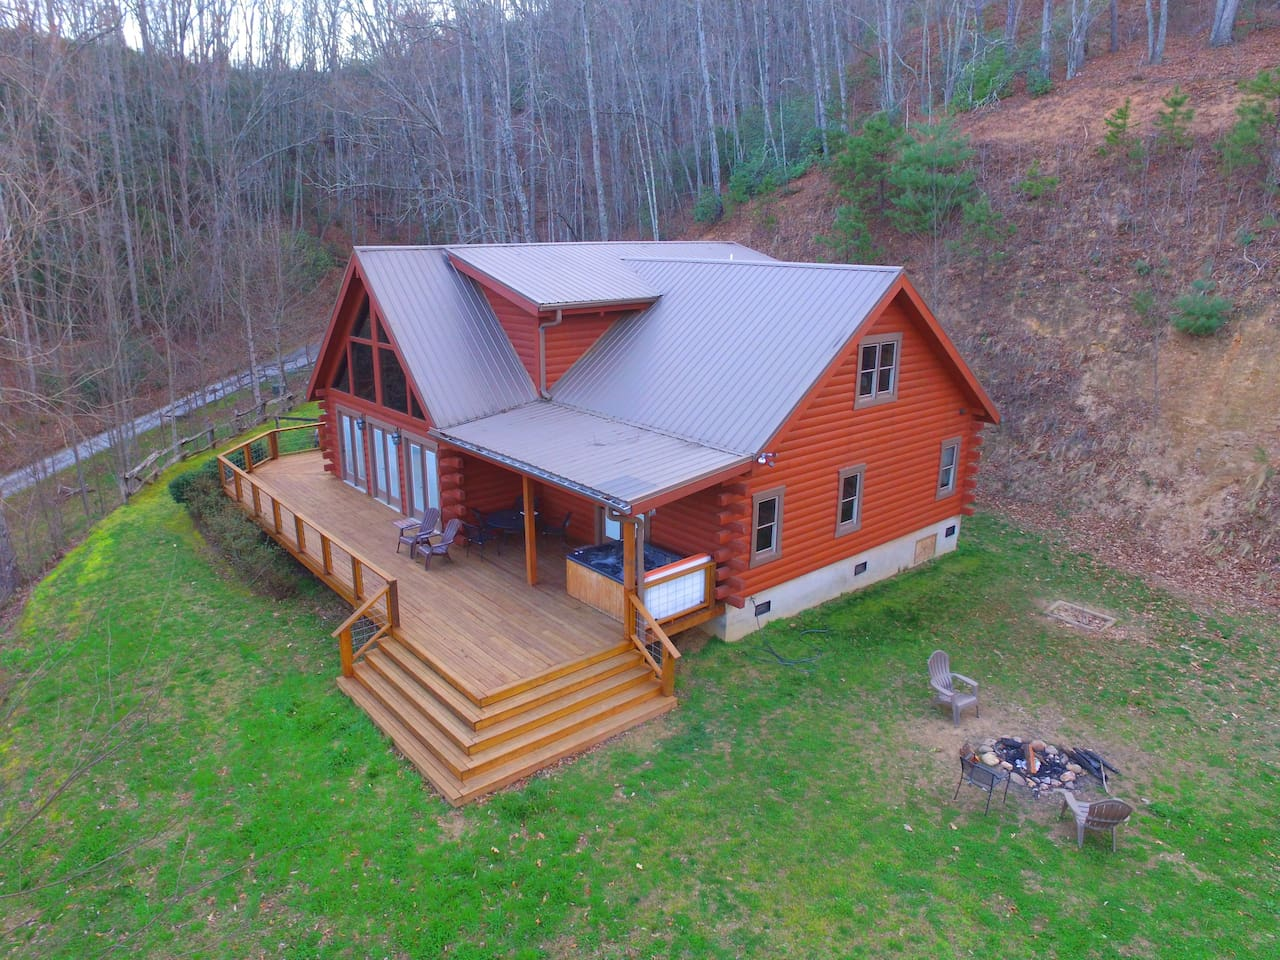 The Smoky Mountains are your backyard ~ come & enjoy the serenity that Sophie's Choice Cabin offers!